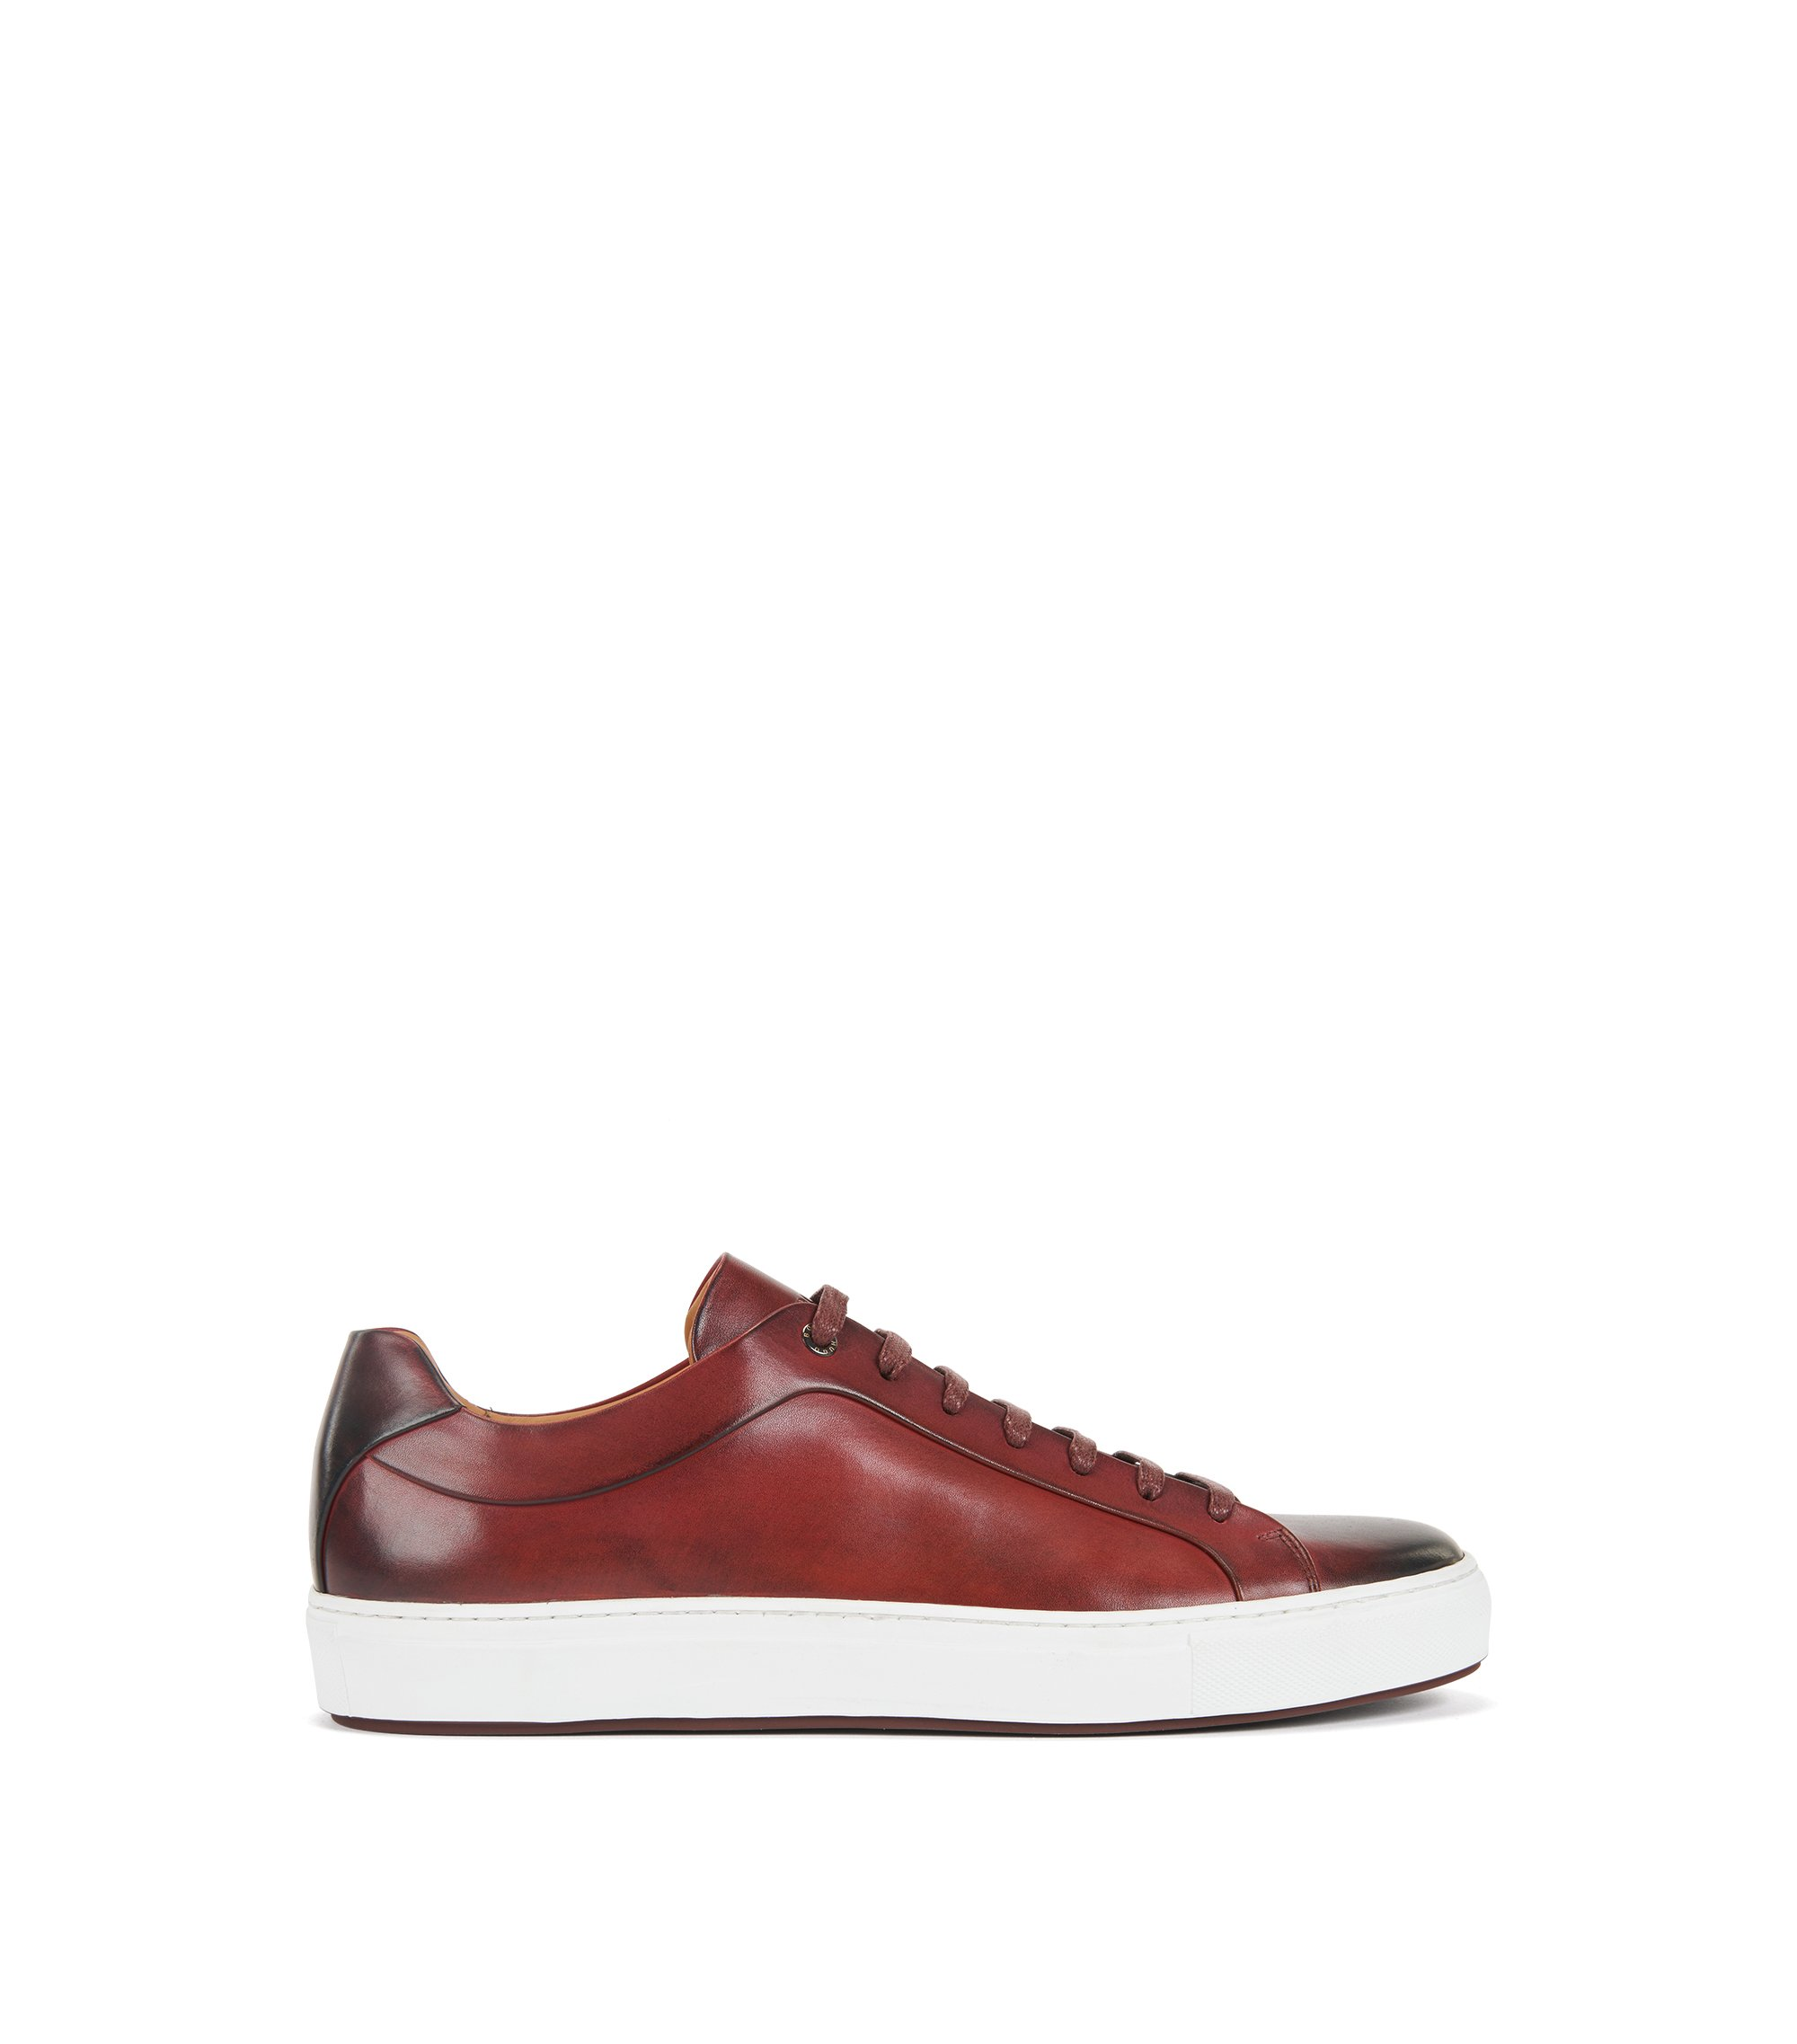 Baskets style tennis en cuir bruni, Rouge